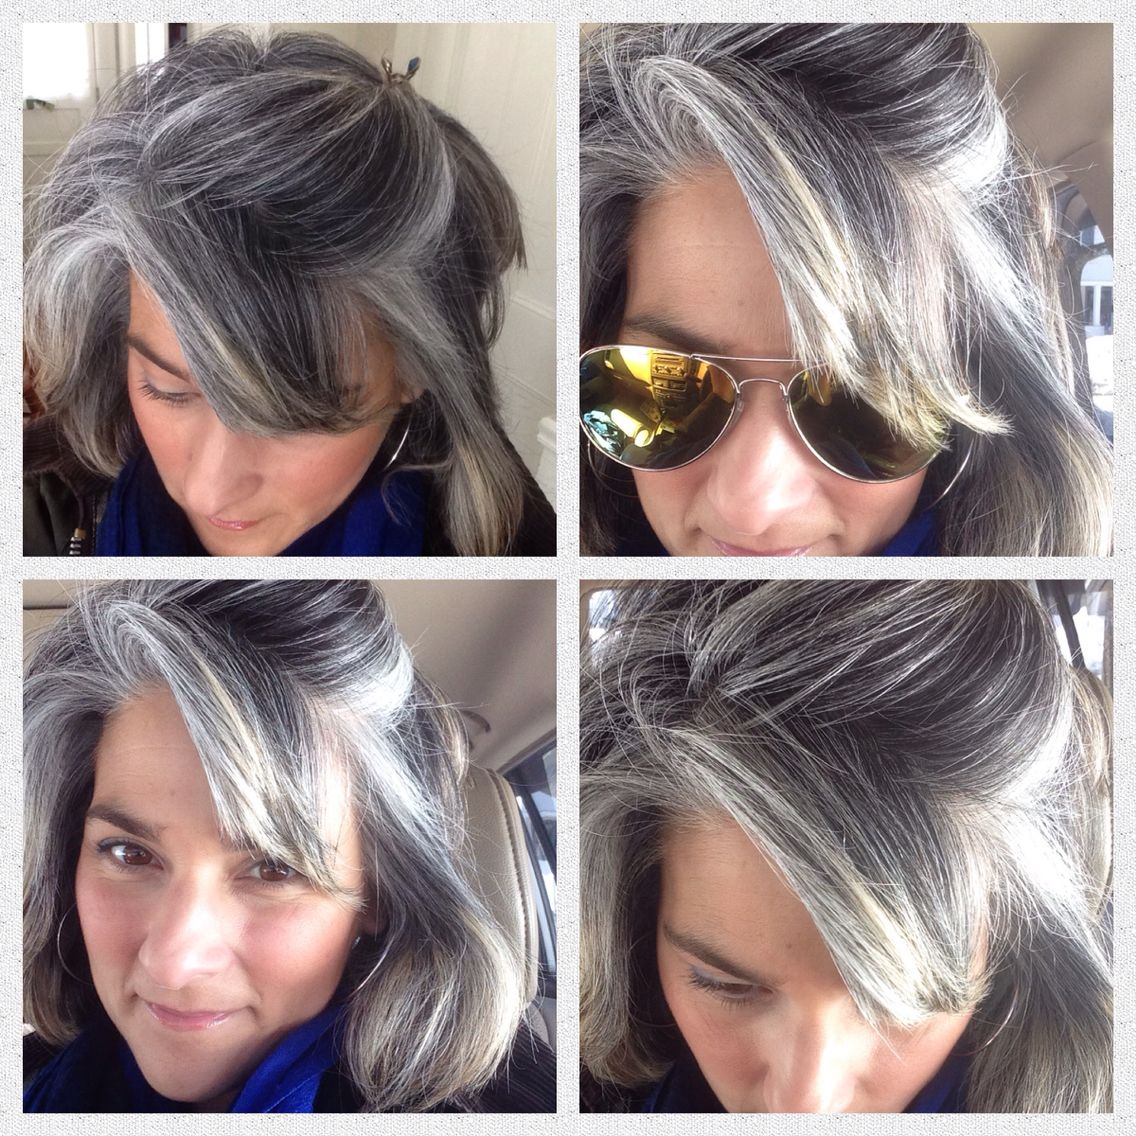 Nine months dye-free. Probably six months to go (with ... - photo#23